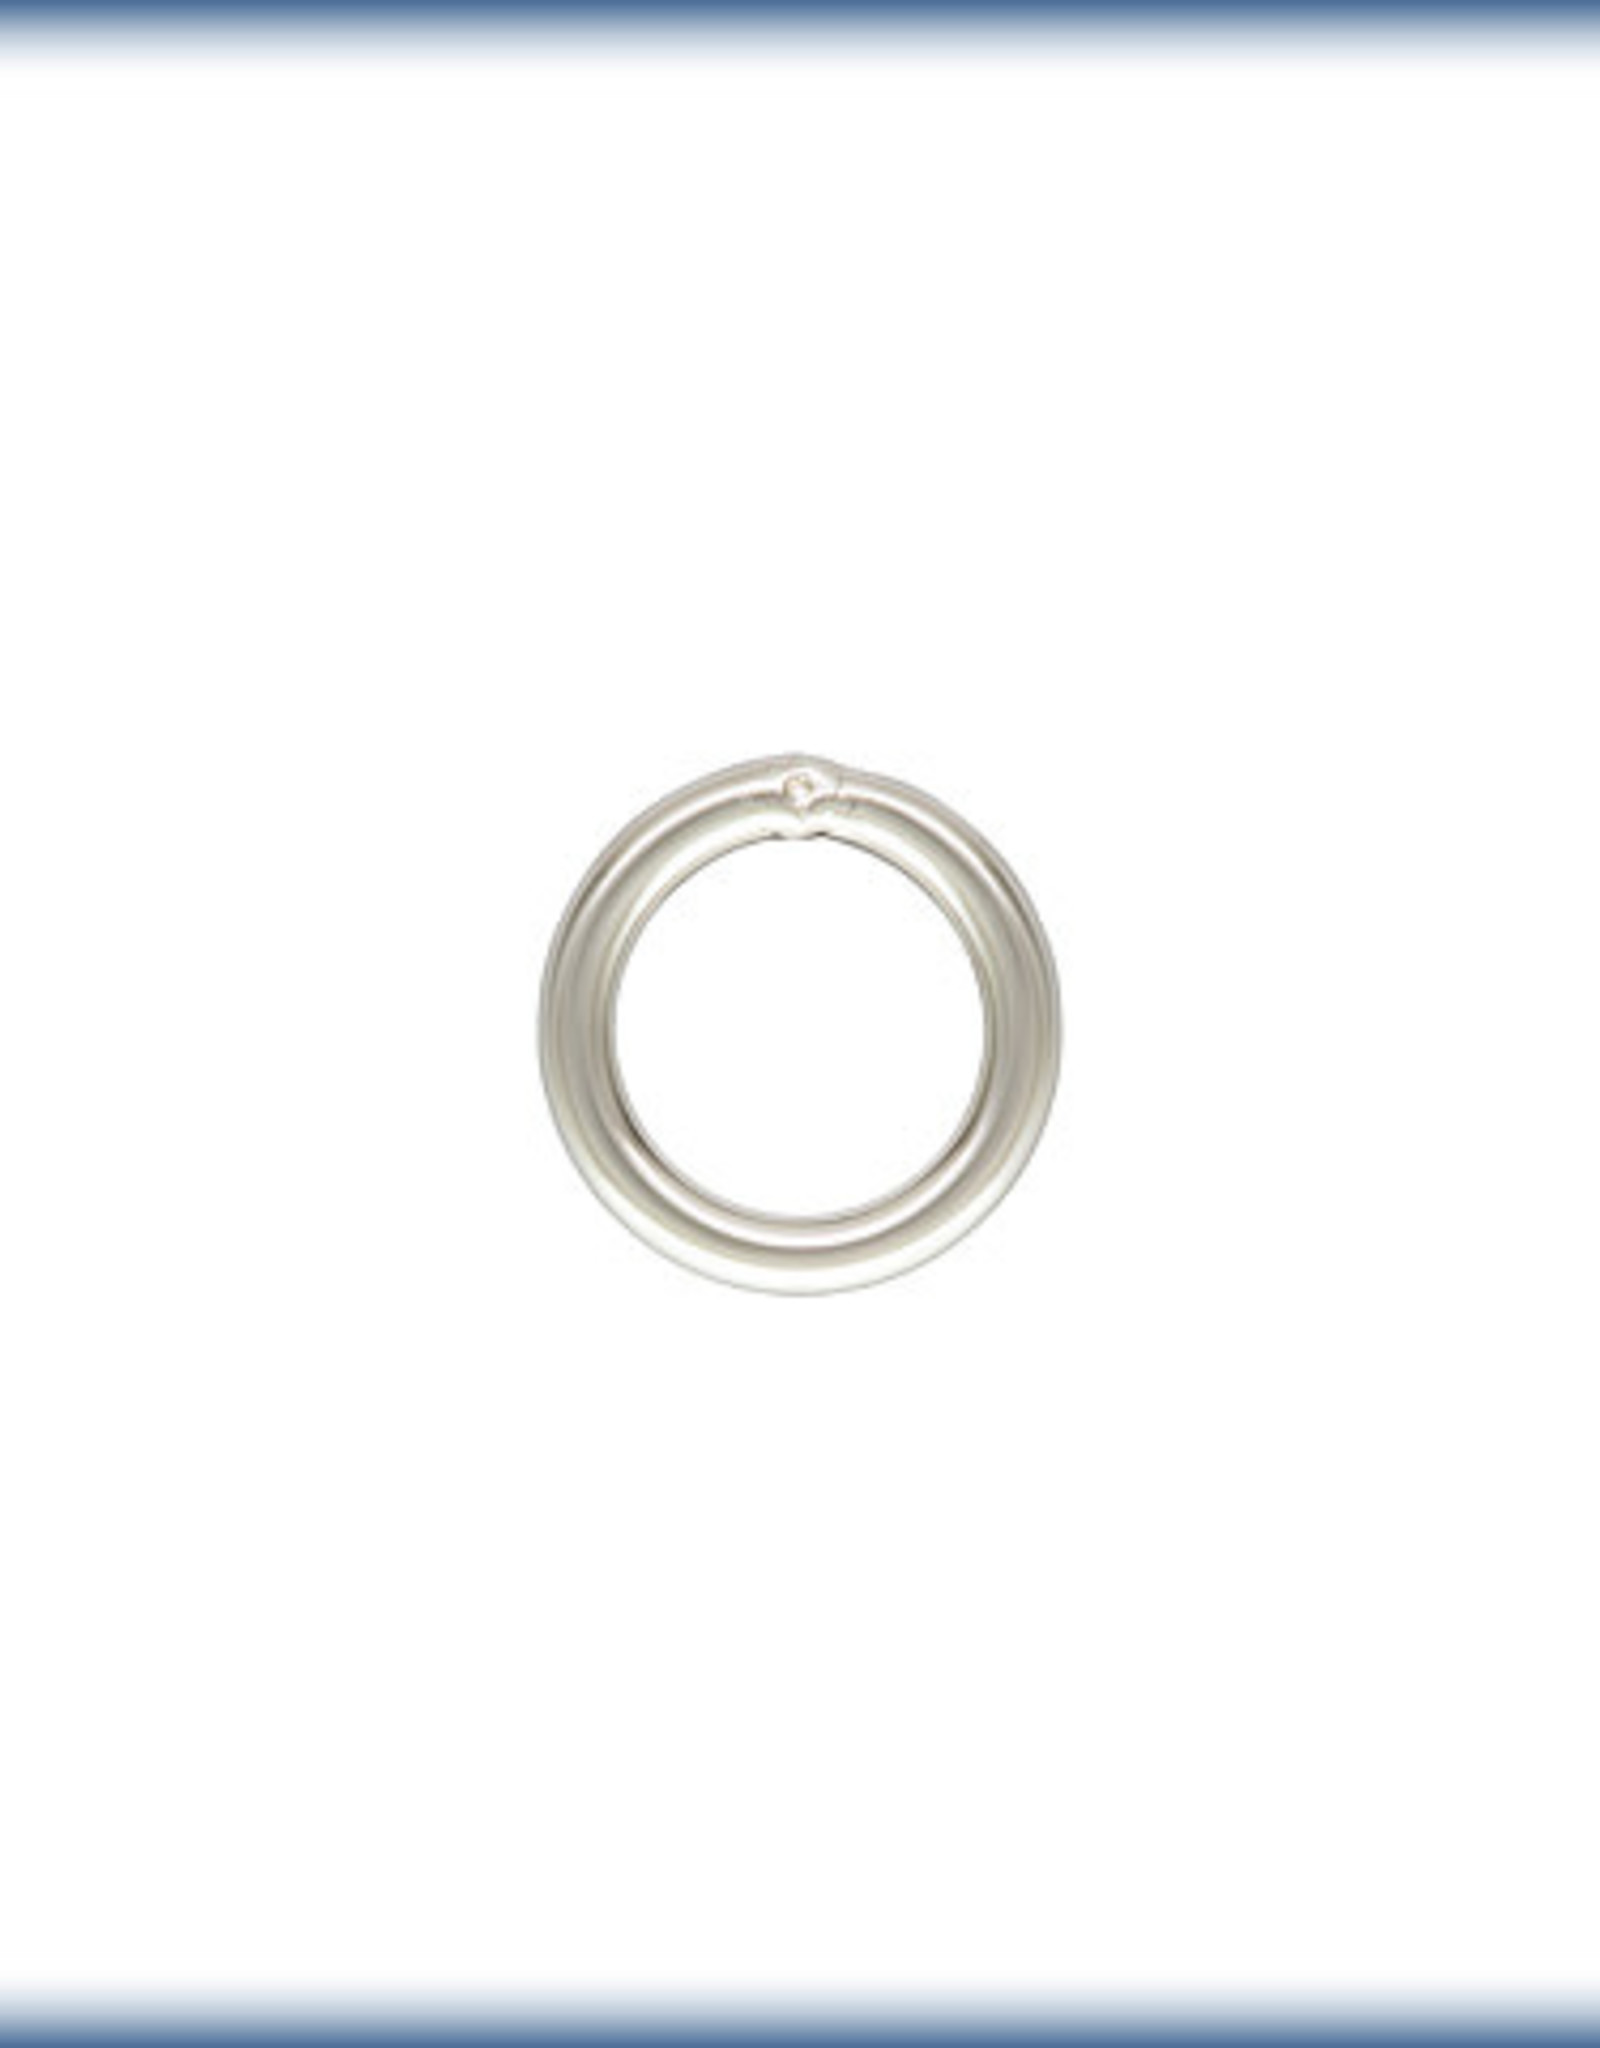 4mm Closed Ring, 21ga Sterling Silver Qty 10